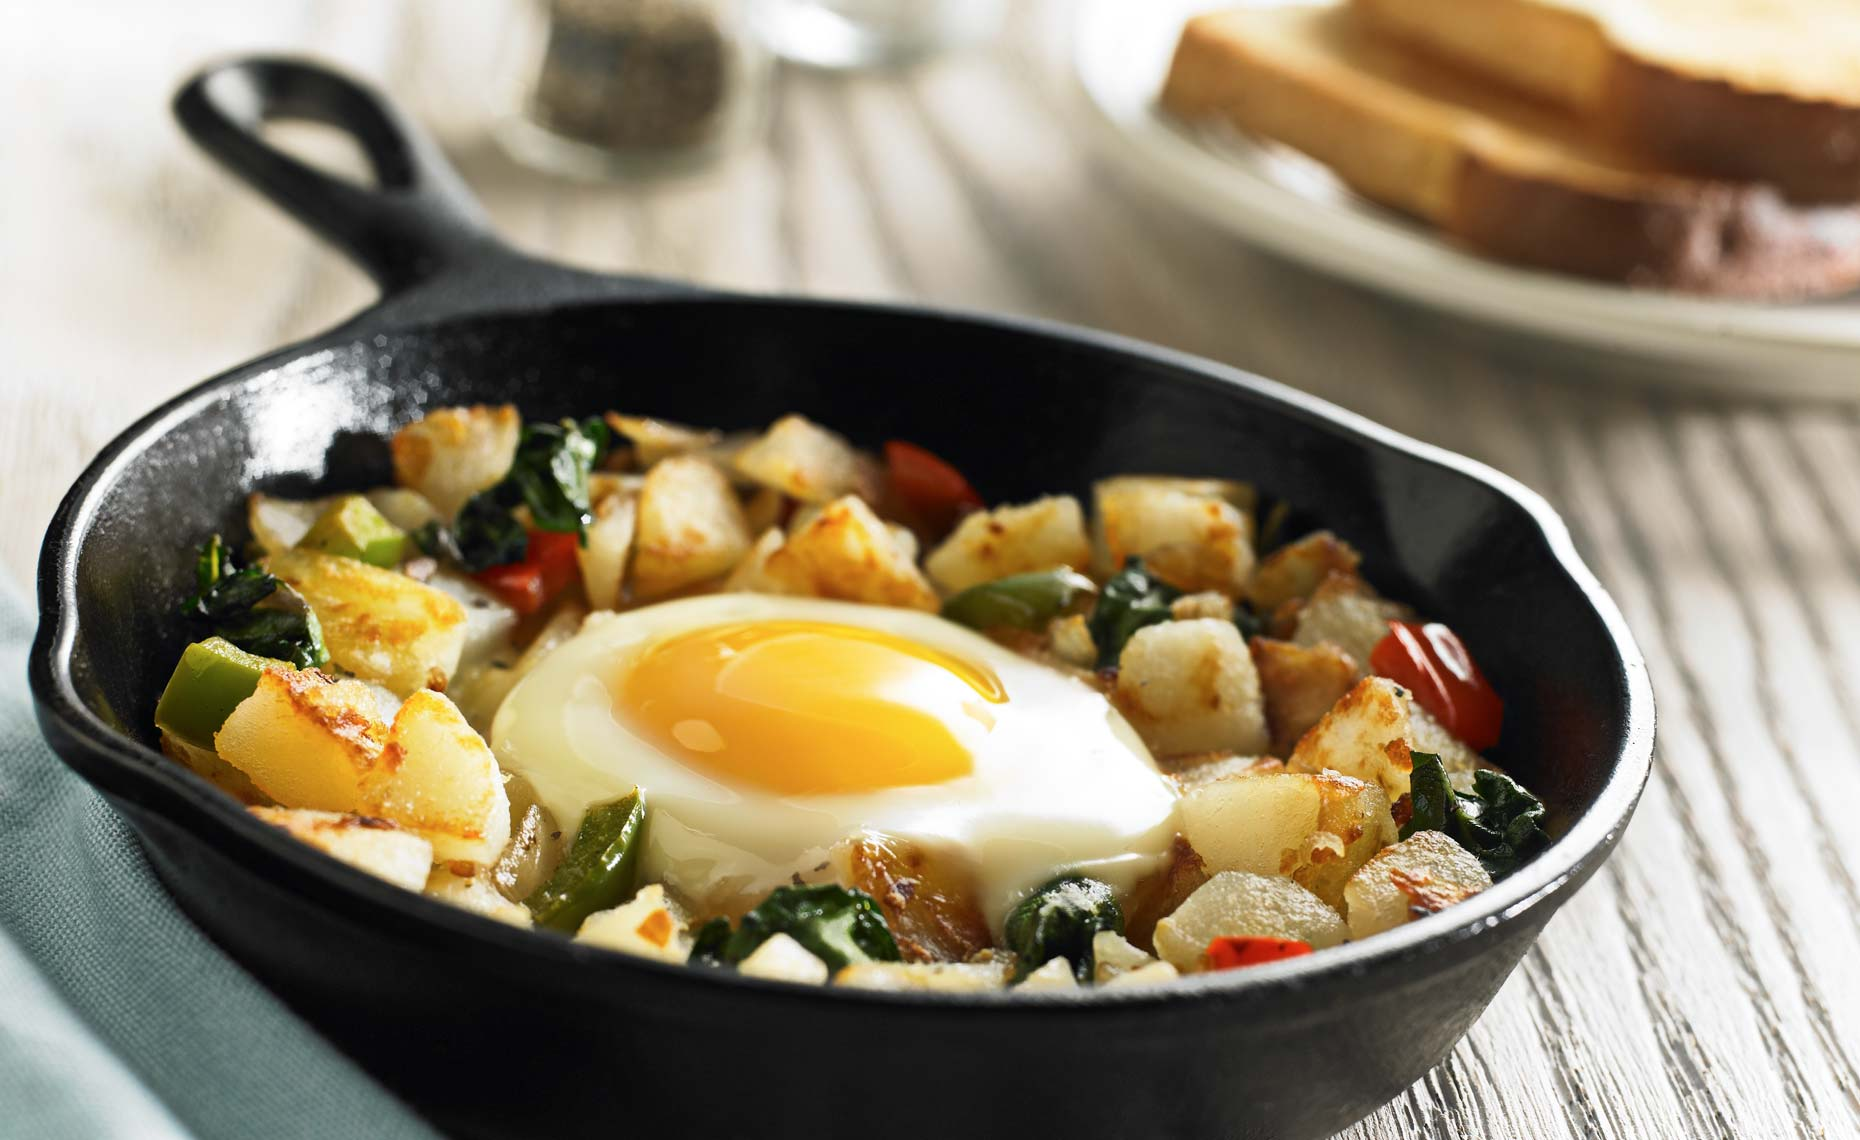 BreakfastSkillet.jpg